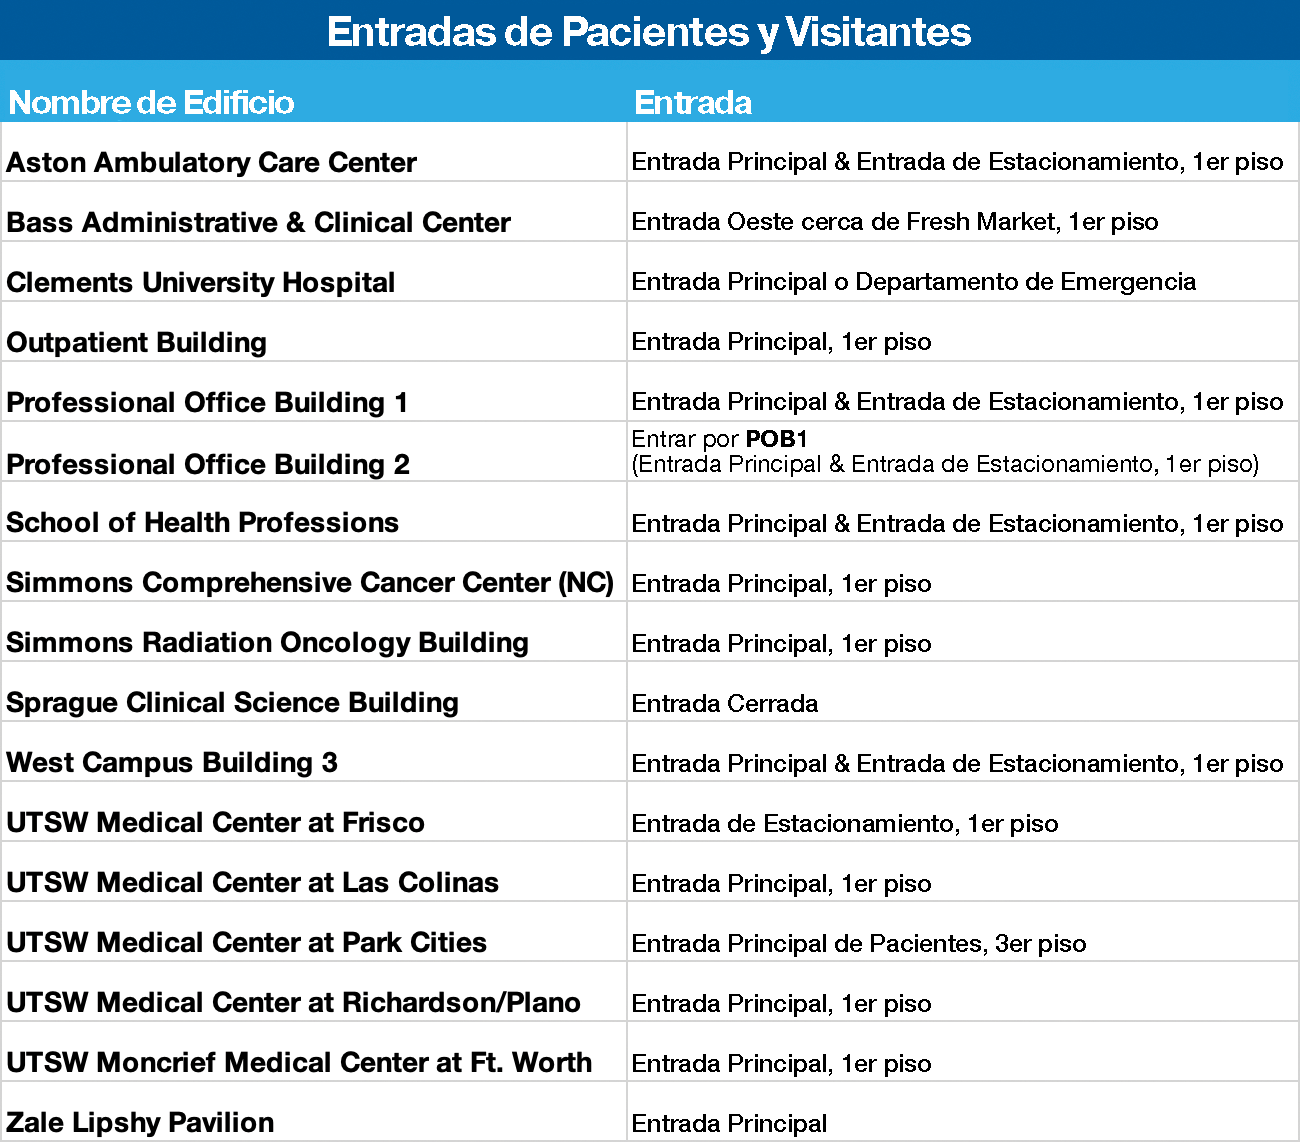 SPANISH-Patient-Visitor-Entry-Points-4-15.png